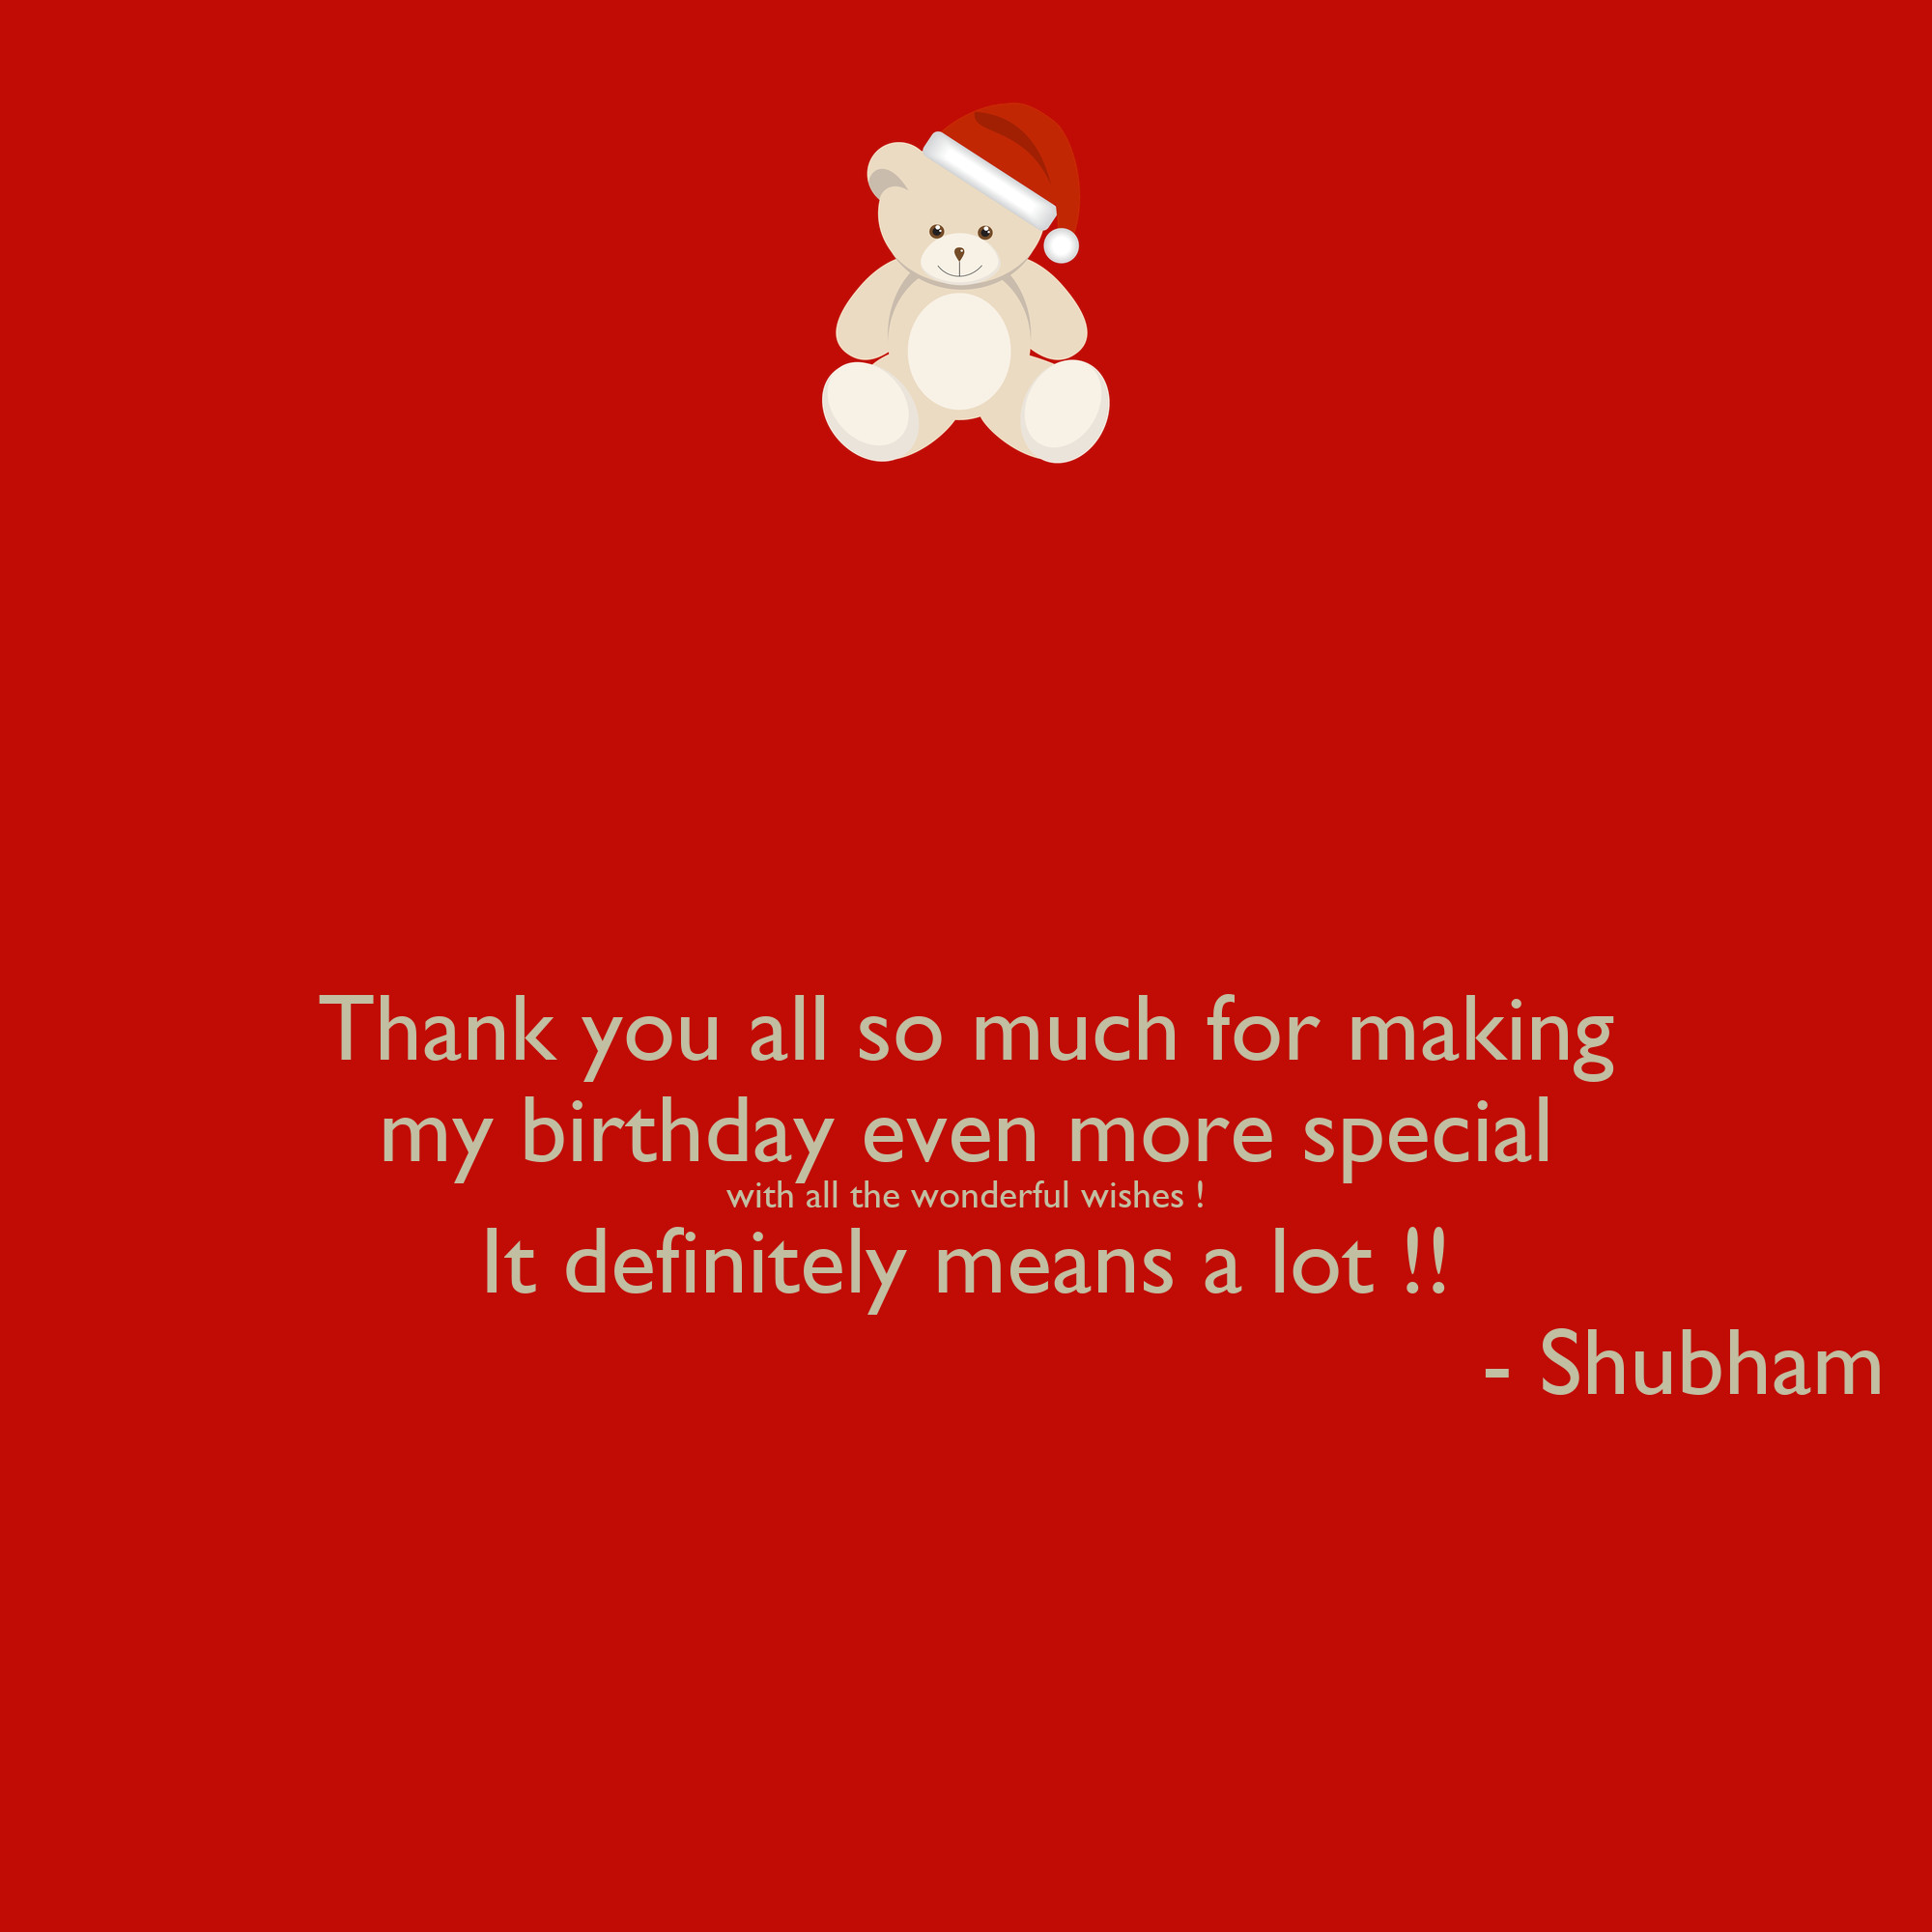 Thank You So Much For The Birthday Wishes  Thank you all so much for making my birthday even more